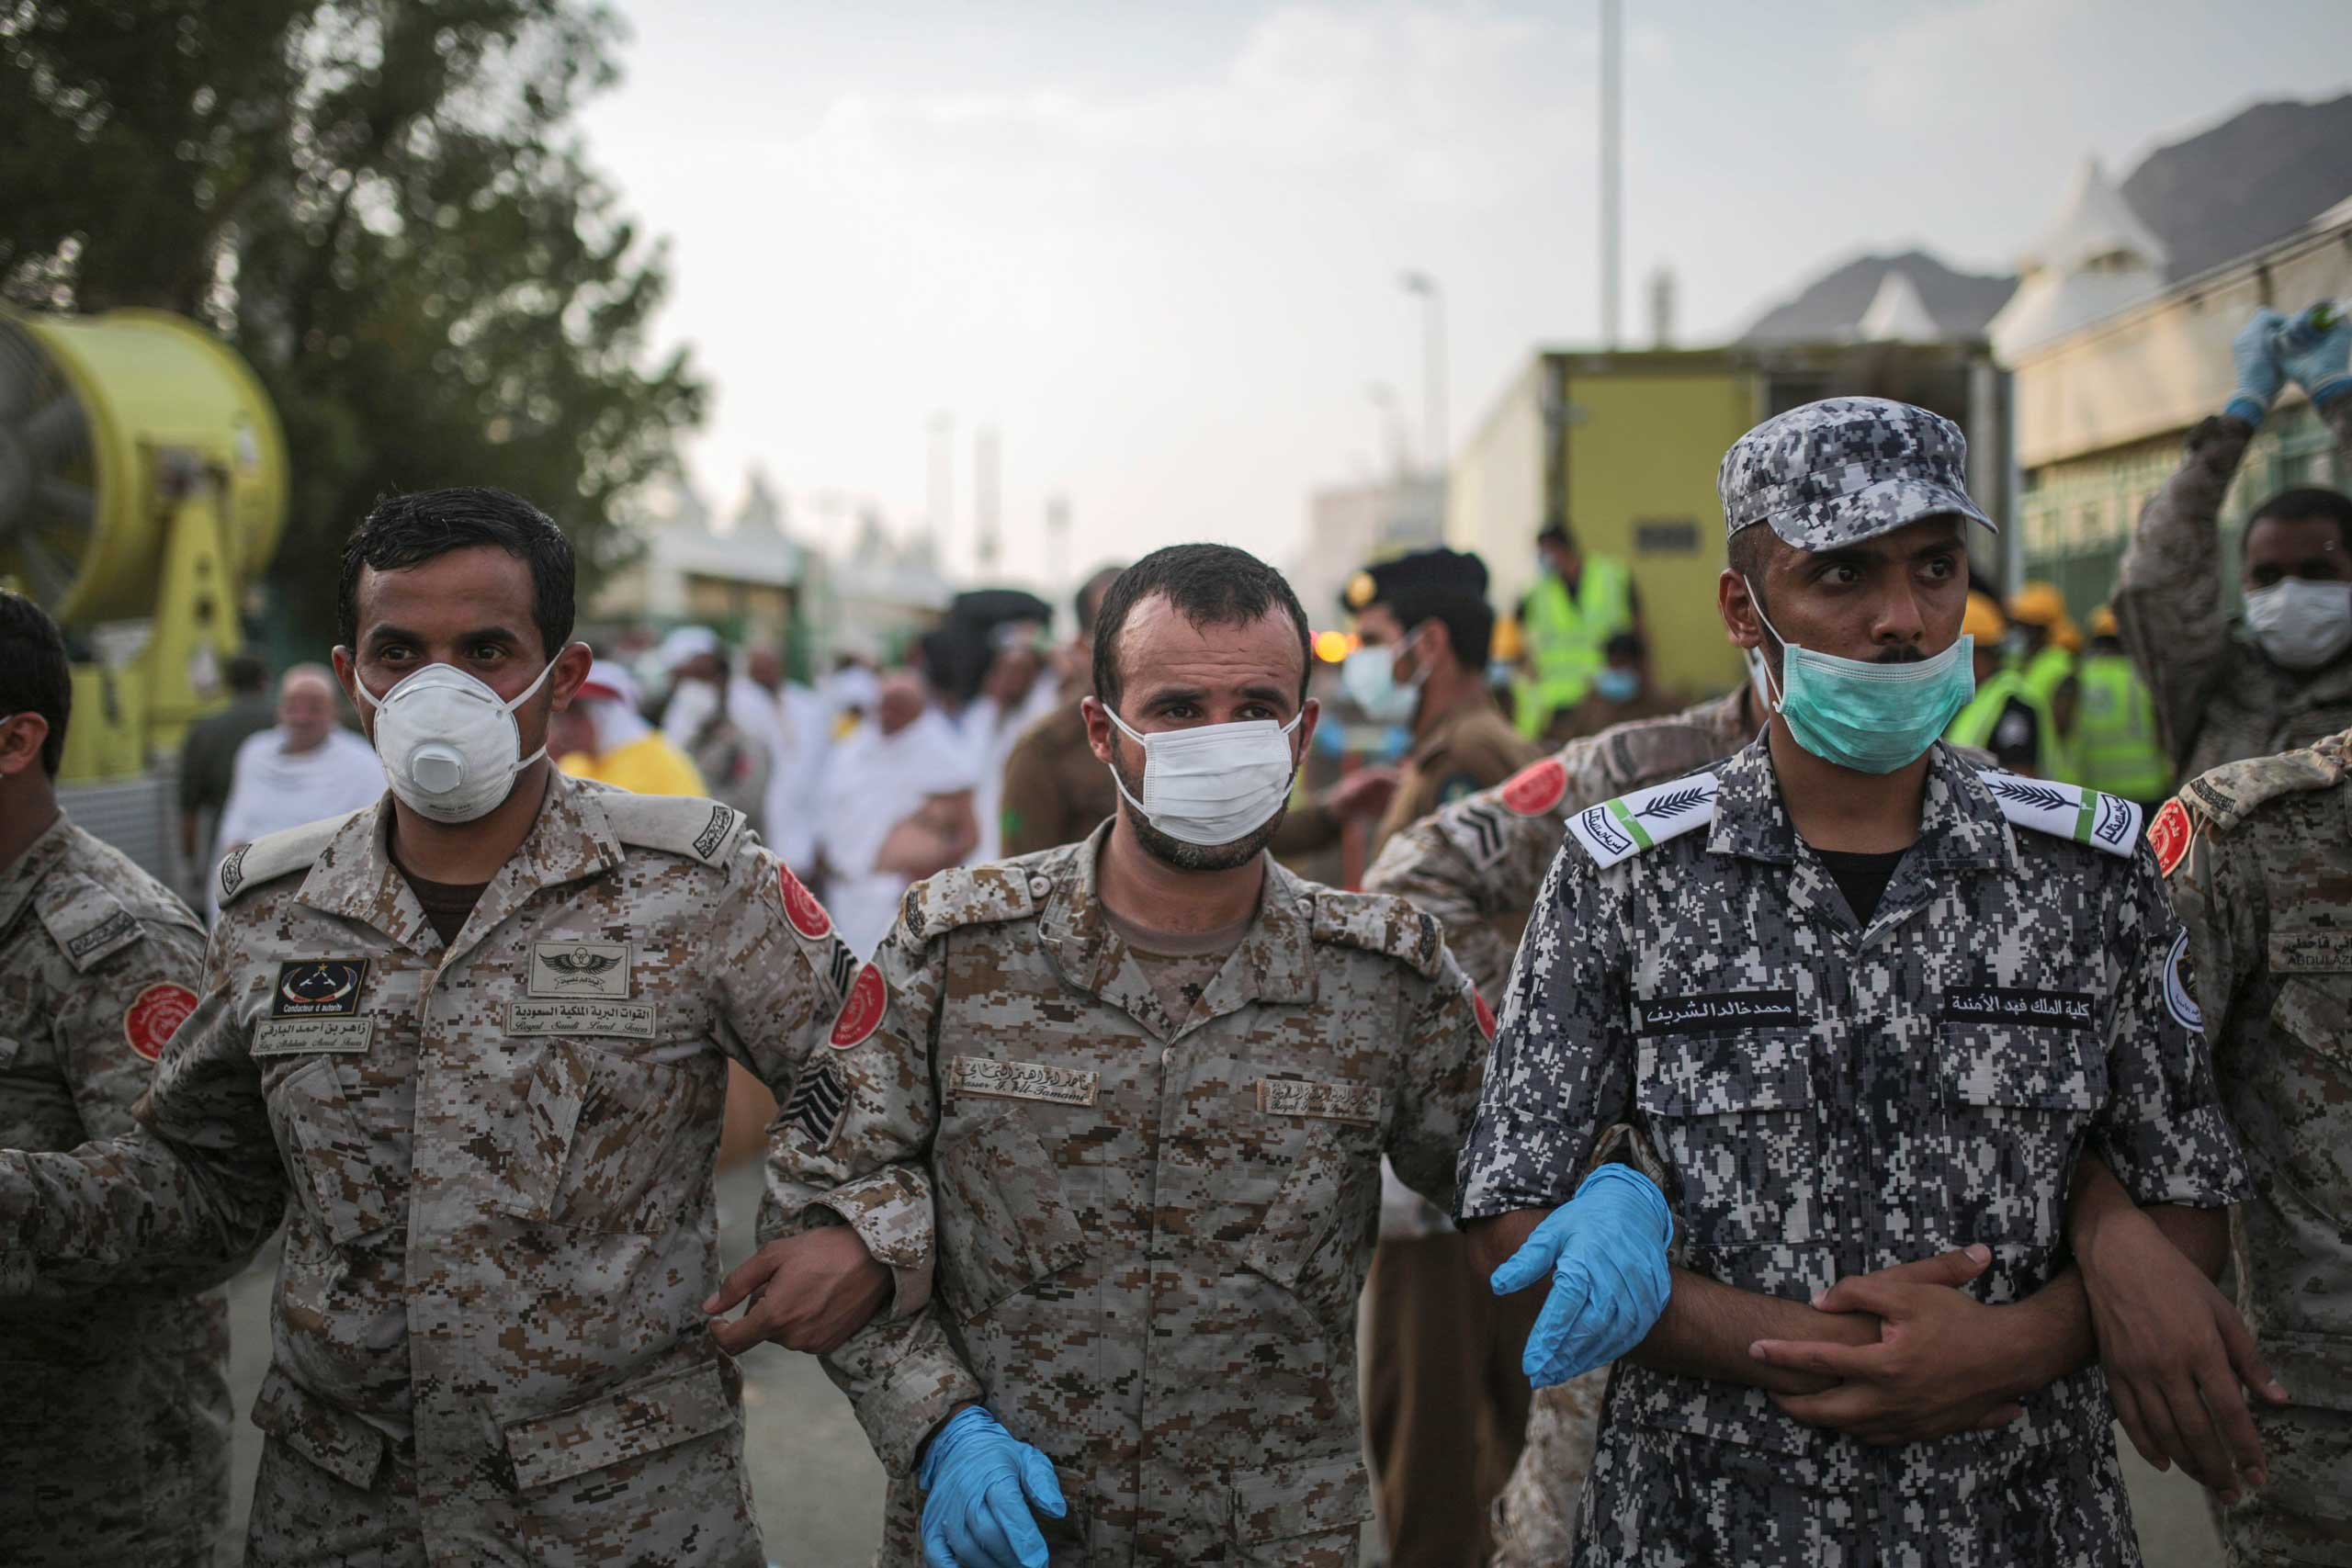 Saudi security forces cordon the site where pilgrims were crushed and trampled to death during the annual hajj pilgrimage in Mina, Saudi Arabia, on Sept. 24, 2015.